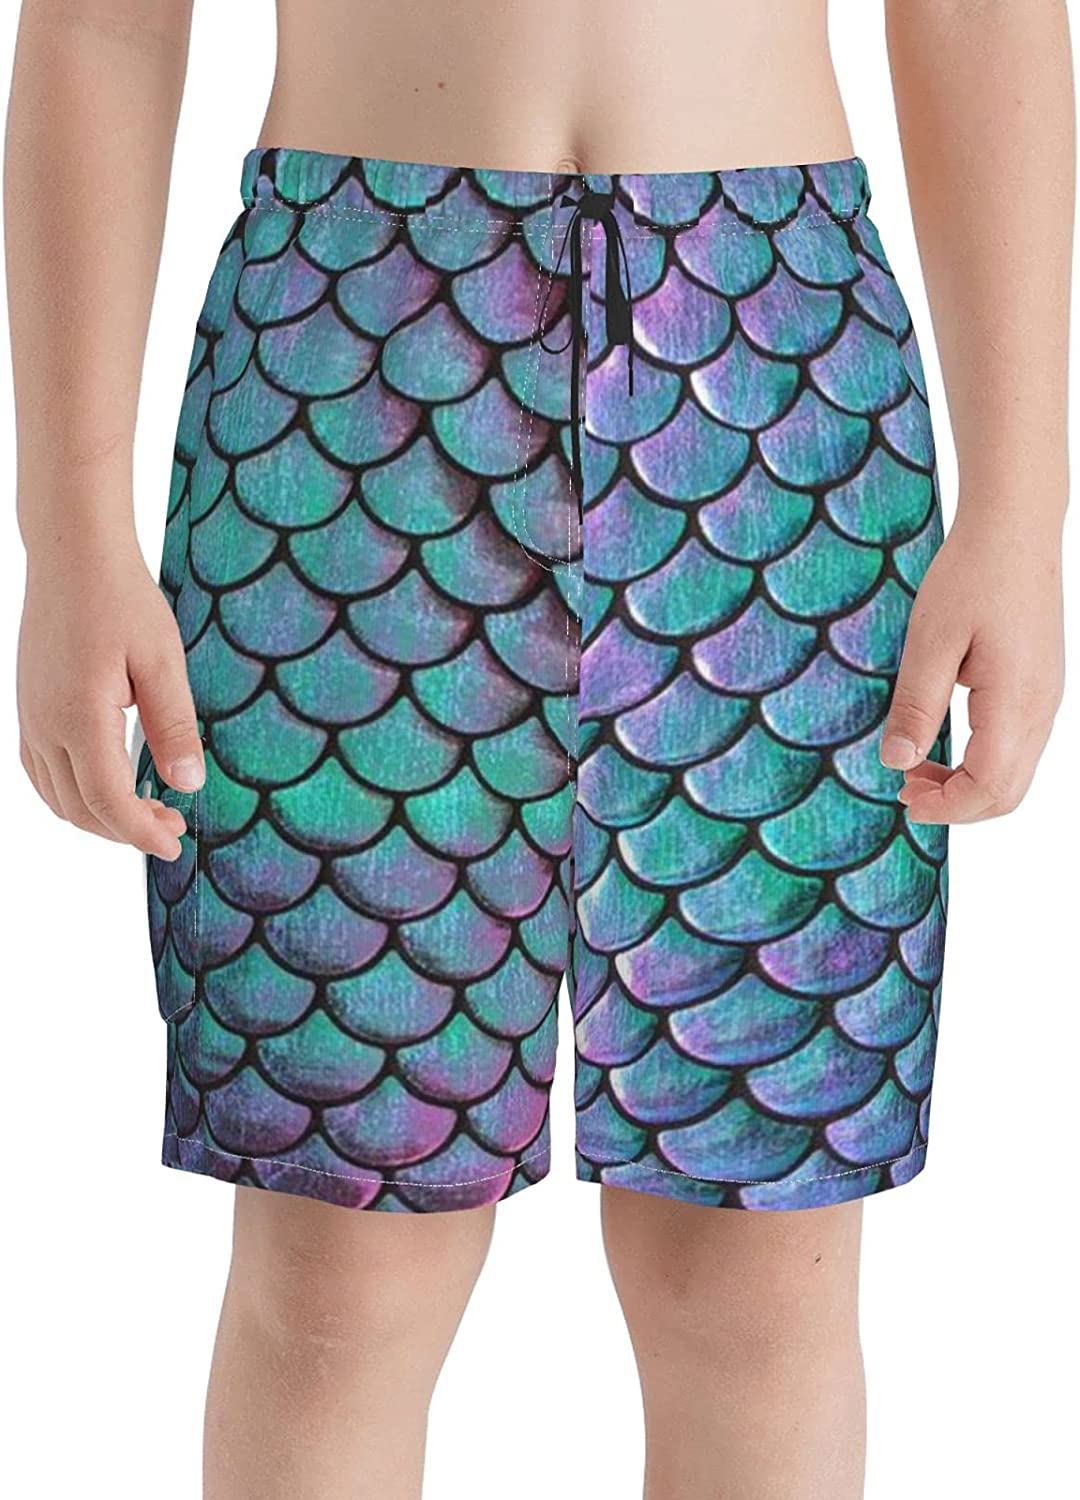 Mermaid Metallic Scales Max 59% OFF Turquoise and Swim Purple Boys Free Shipping New T Trunks